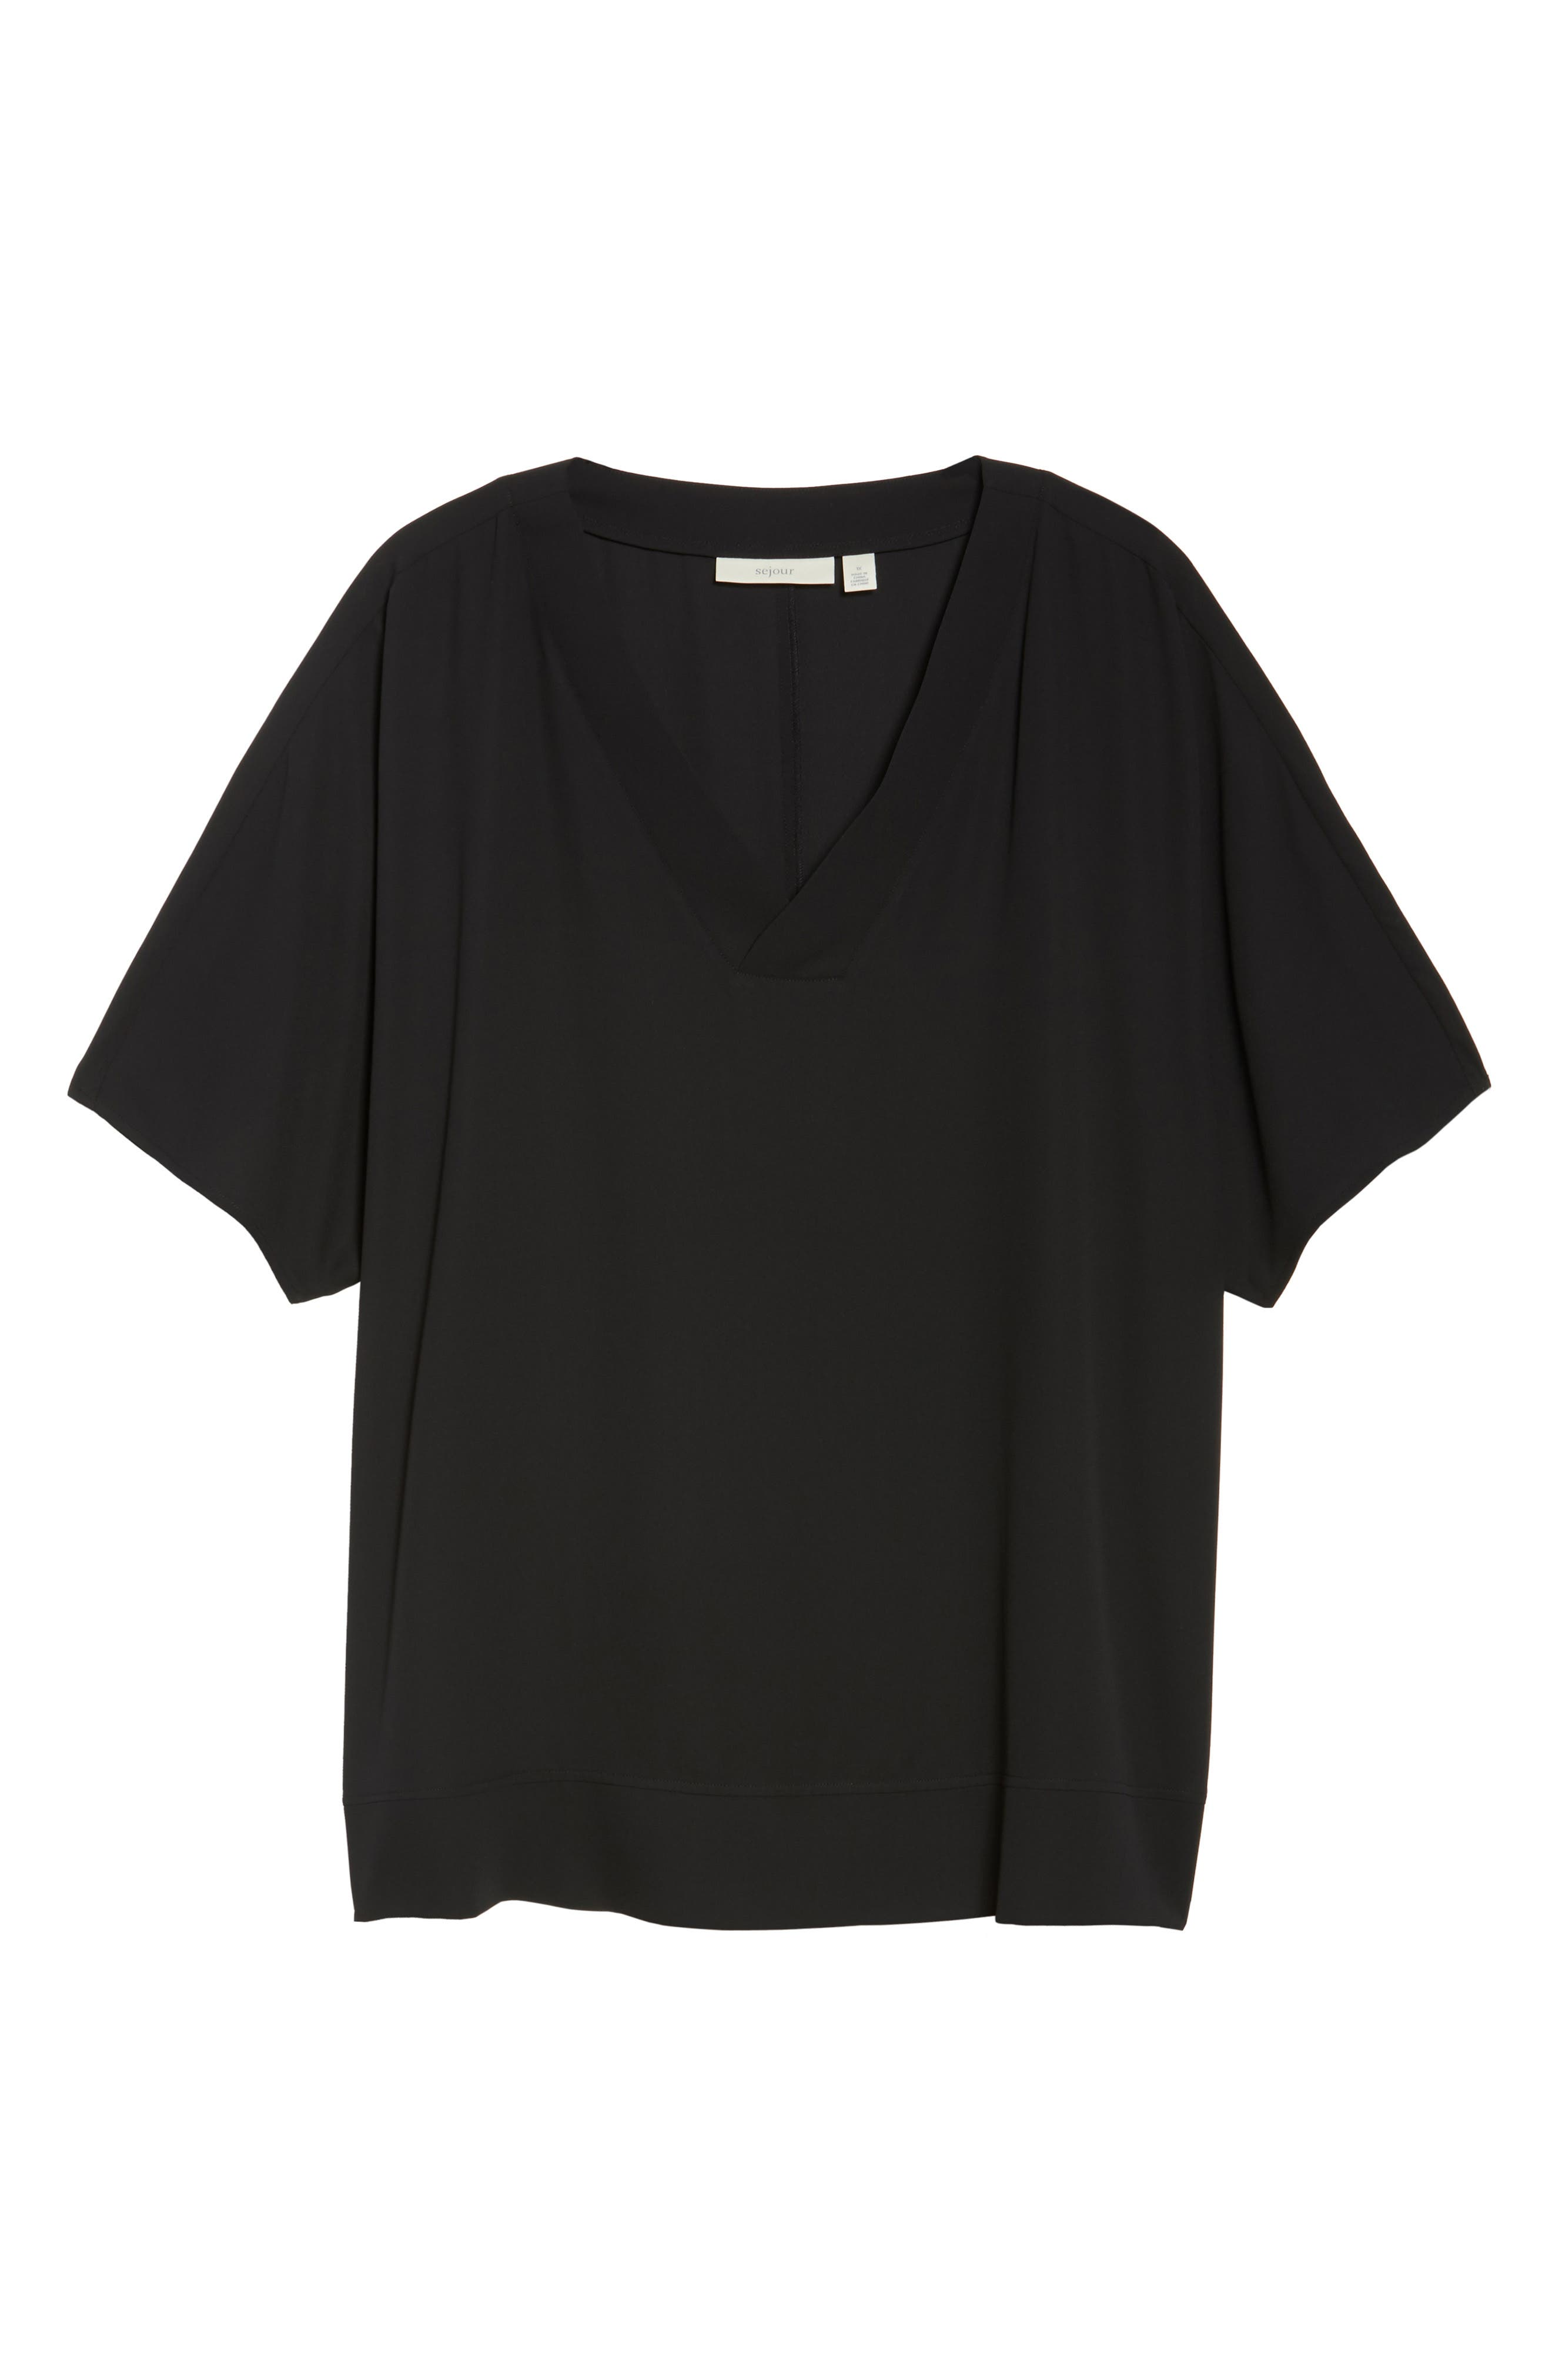 V-Neck Top,                             Alternate thumbnail 6, color,                             001